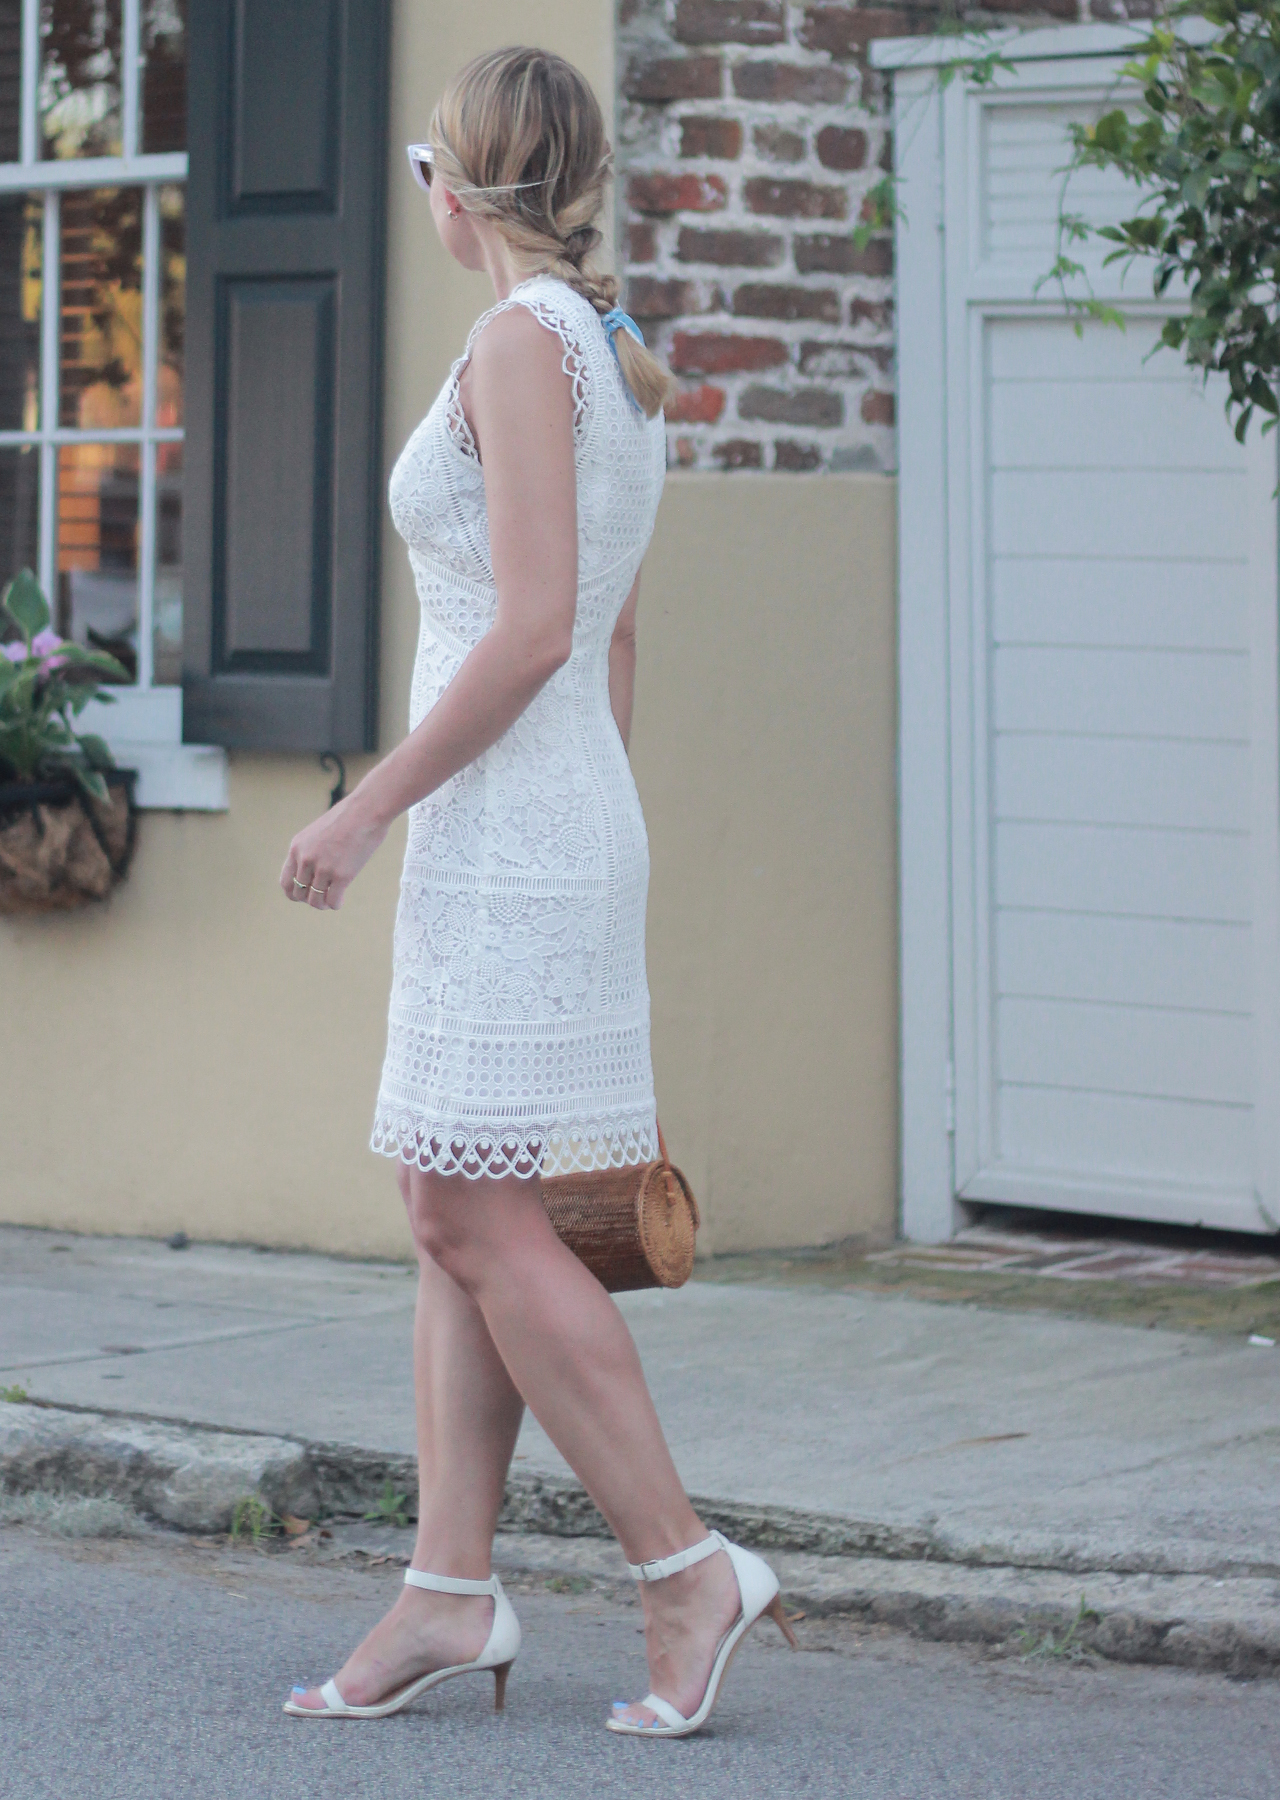 The Steele Maiden: Summer style in Charleston - Little White Lace Dress and White Accessories